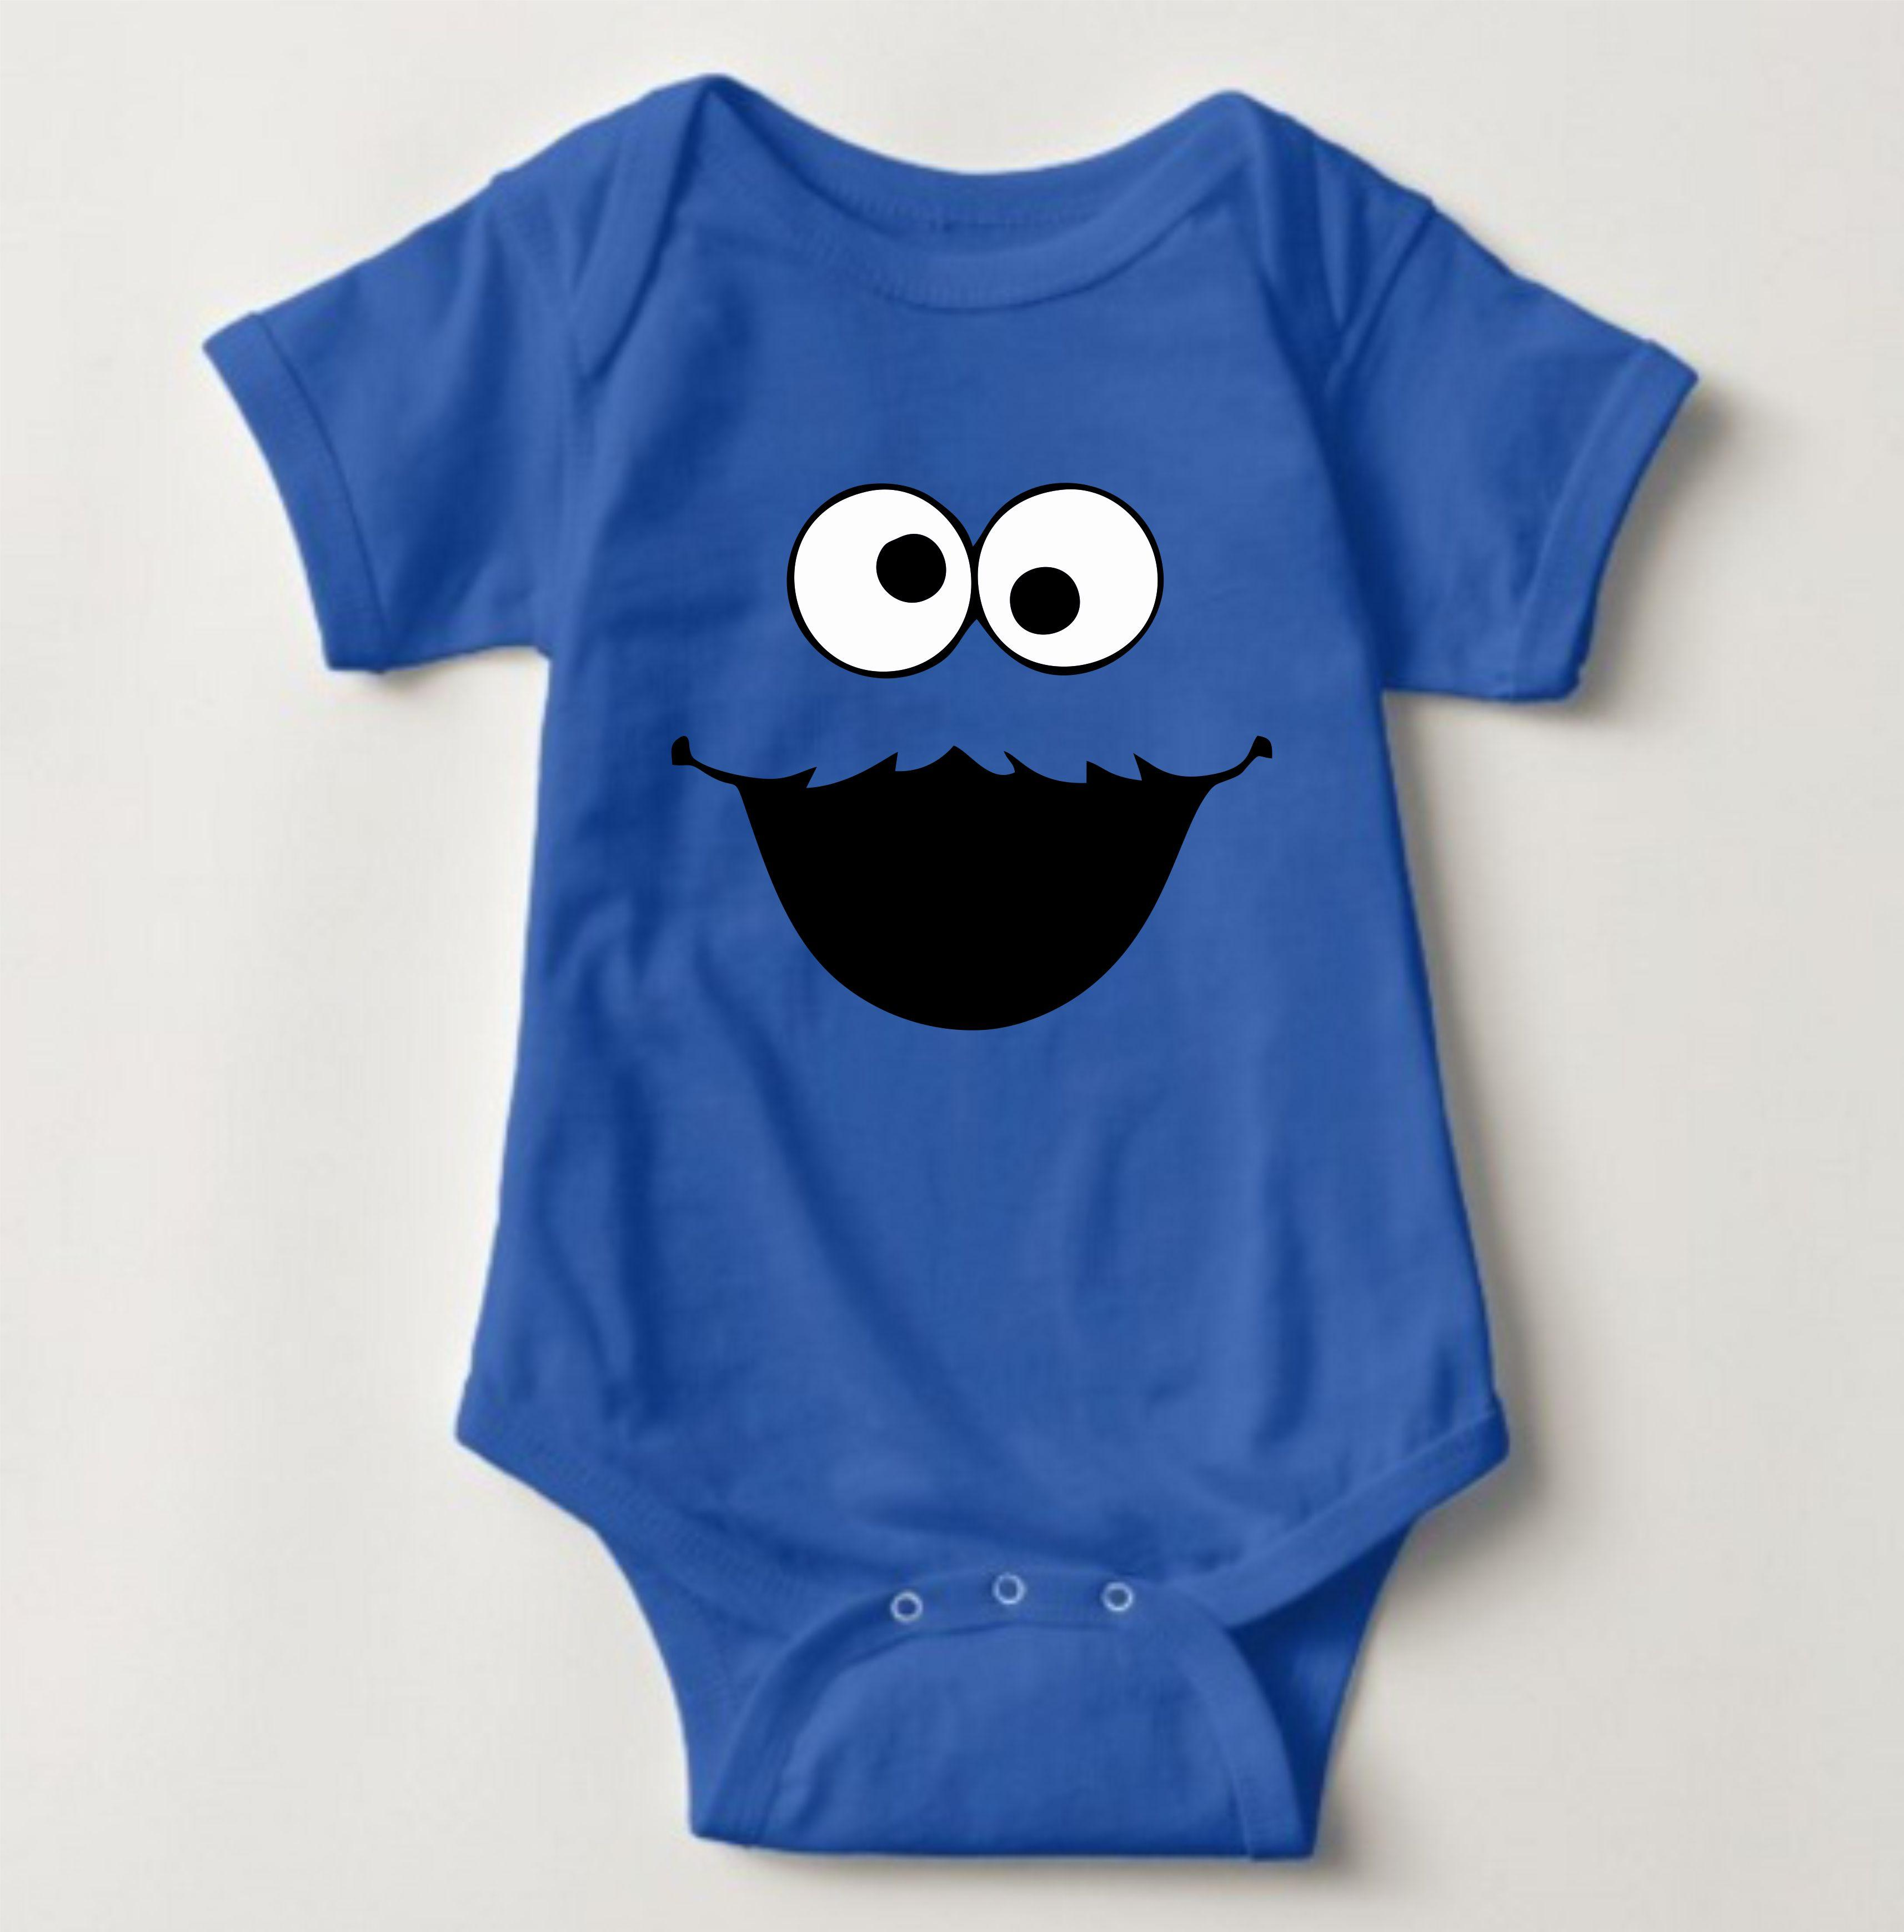 222459e28cc0 Baby Character Onesies - Sesame Street Cookie Monster